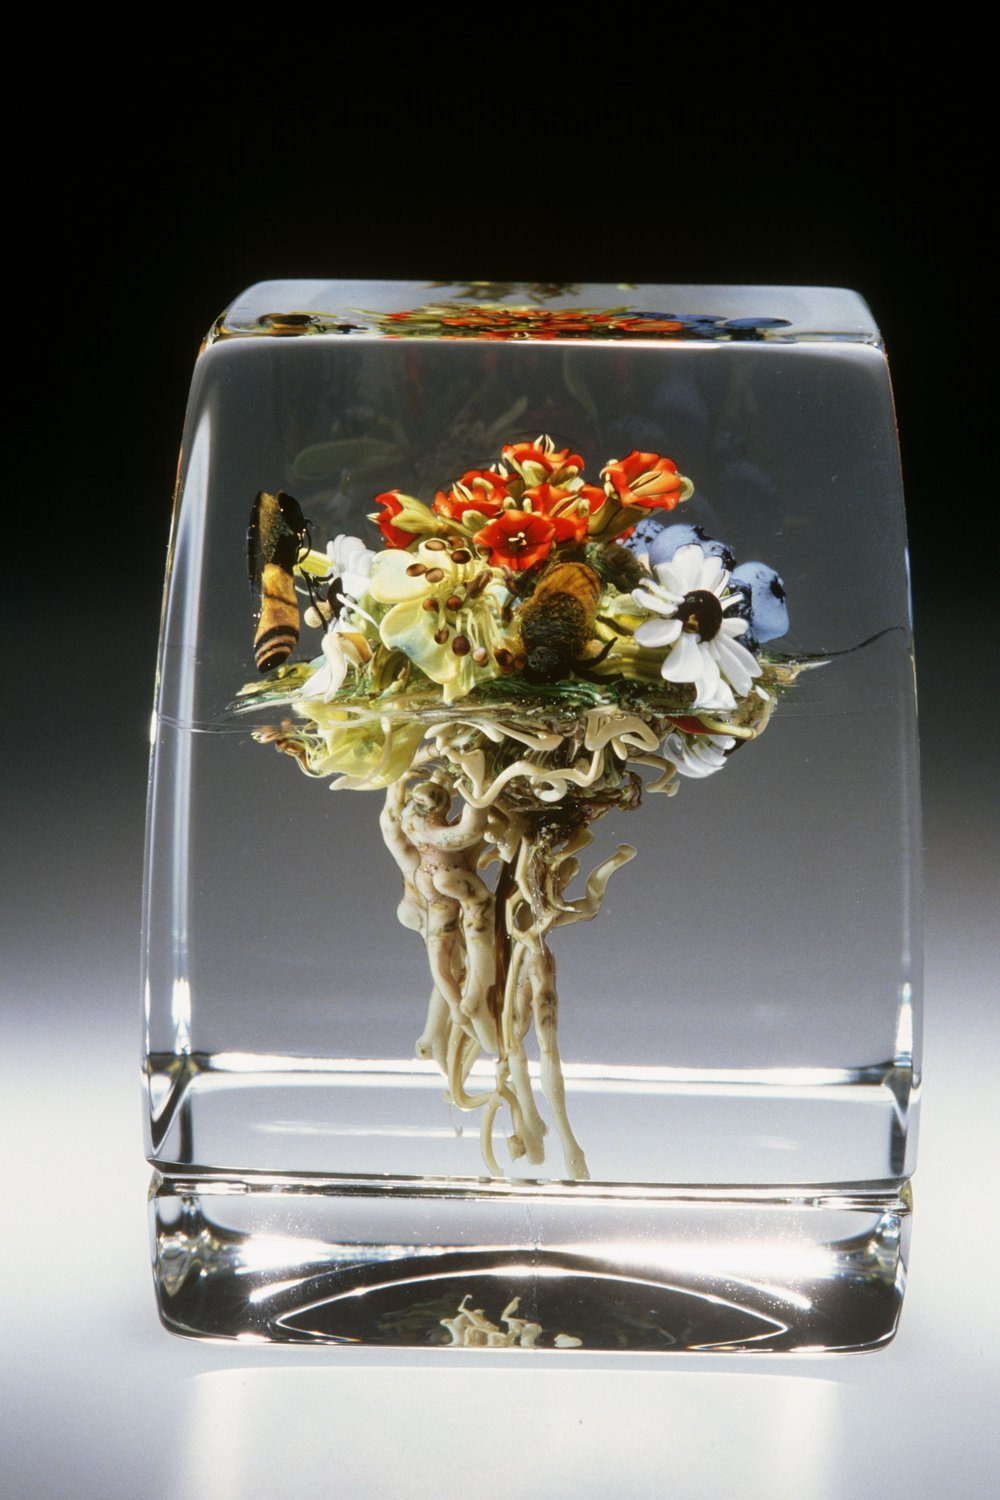 2010; Floral Bouquet Cube with Figures and Honeybee; H. 3.25 inches